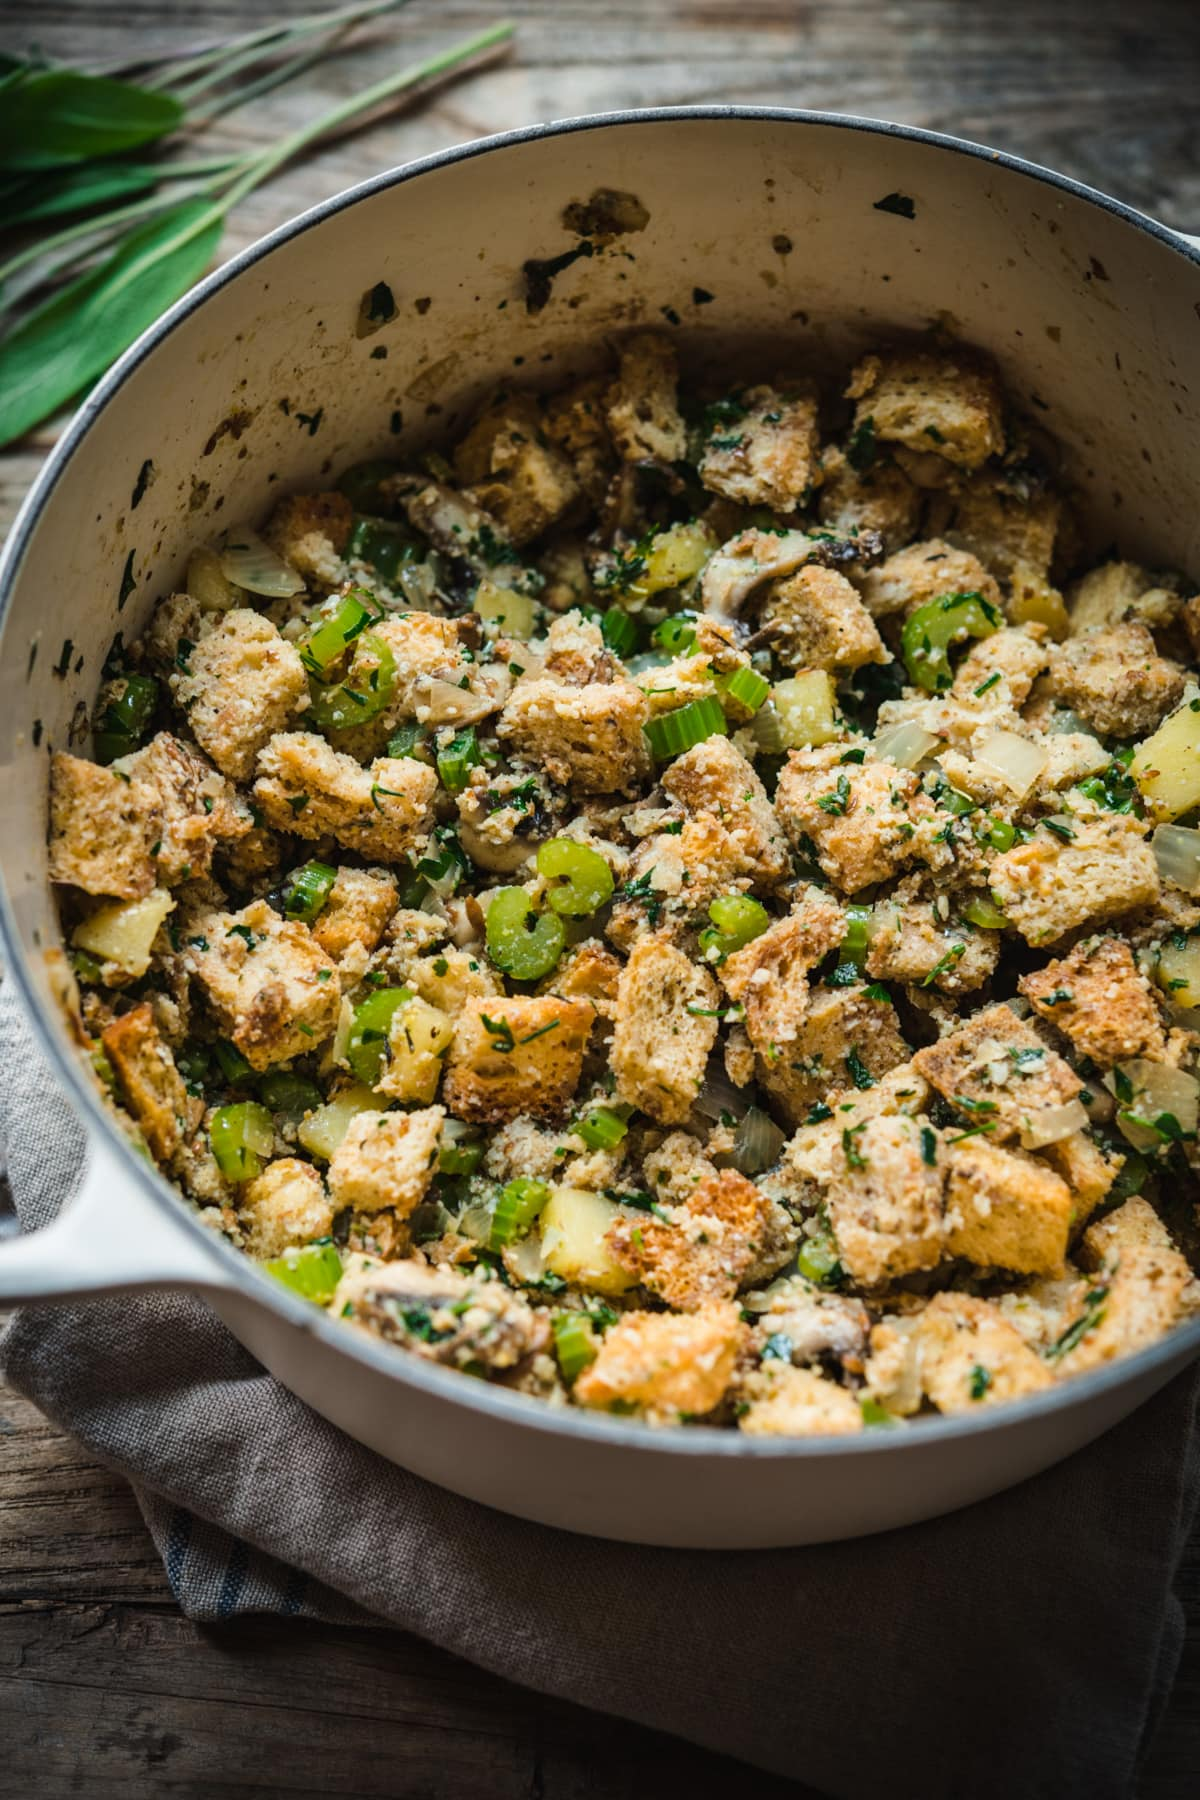 Stuffing ingredients in a pot before baking.